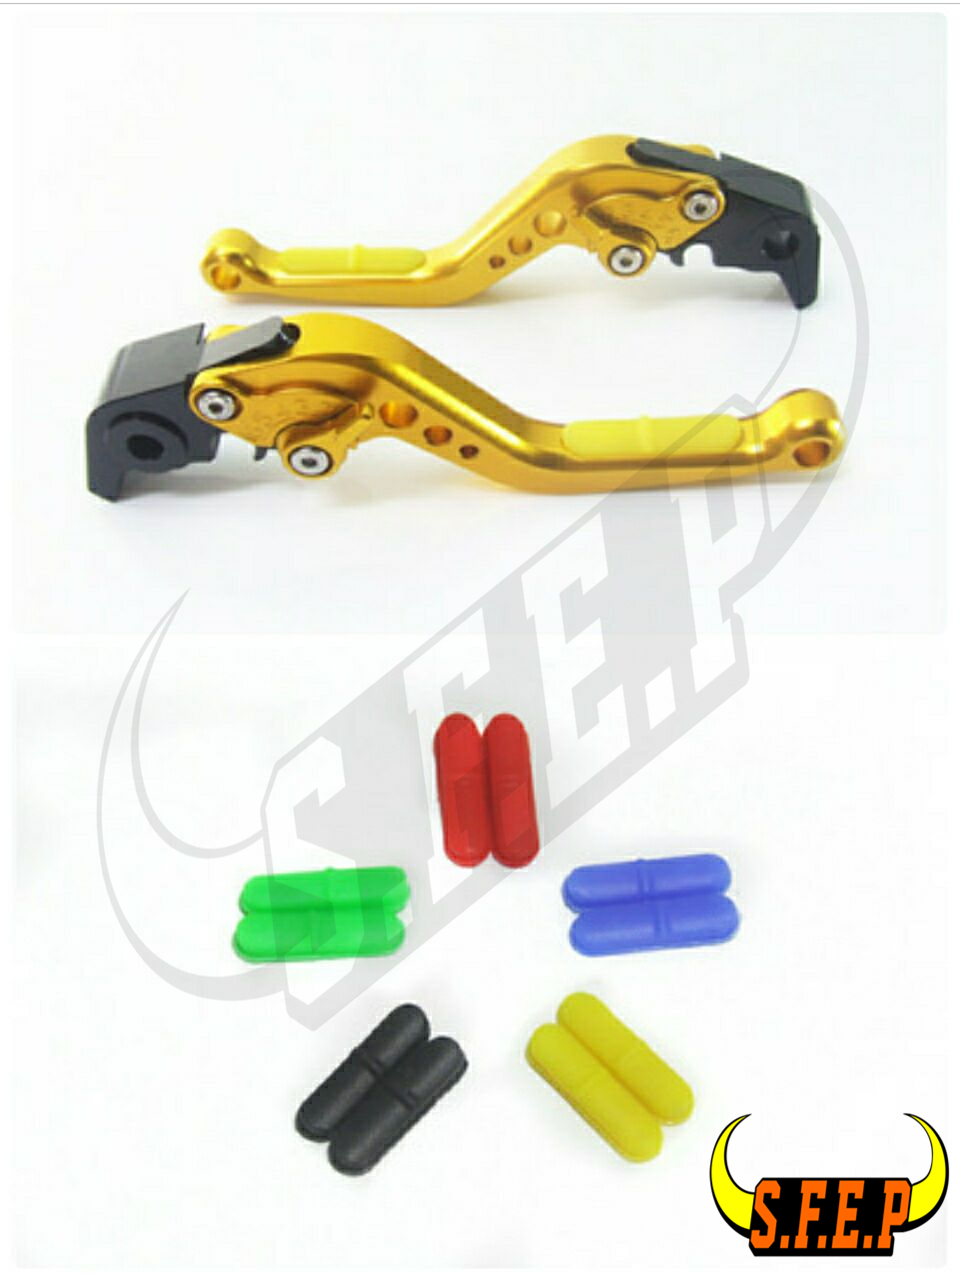 CNC Adjustable Motorcycle Brake and Clutch Levers with Anti-Slip For Suzuki SV650 1999-2009 6 colors cnc adjustable motorcycle brake clutch levers for yamaha yzf r6 yzfr6 1999 2004 2005 2016 2017 logo yzf r6 lever